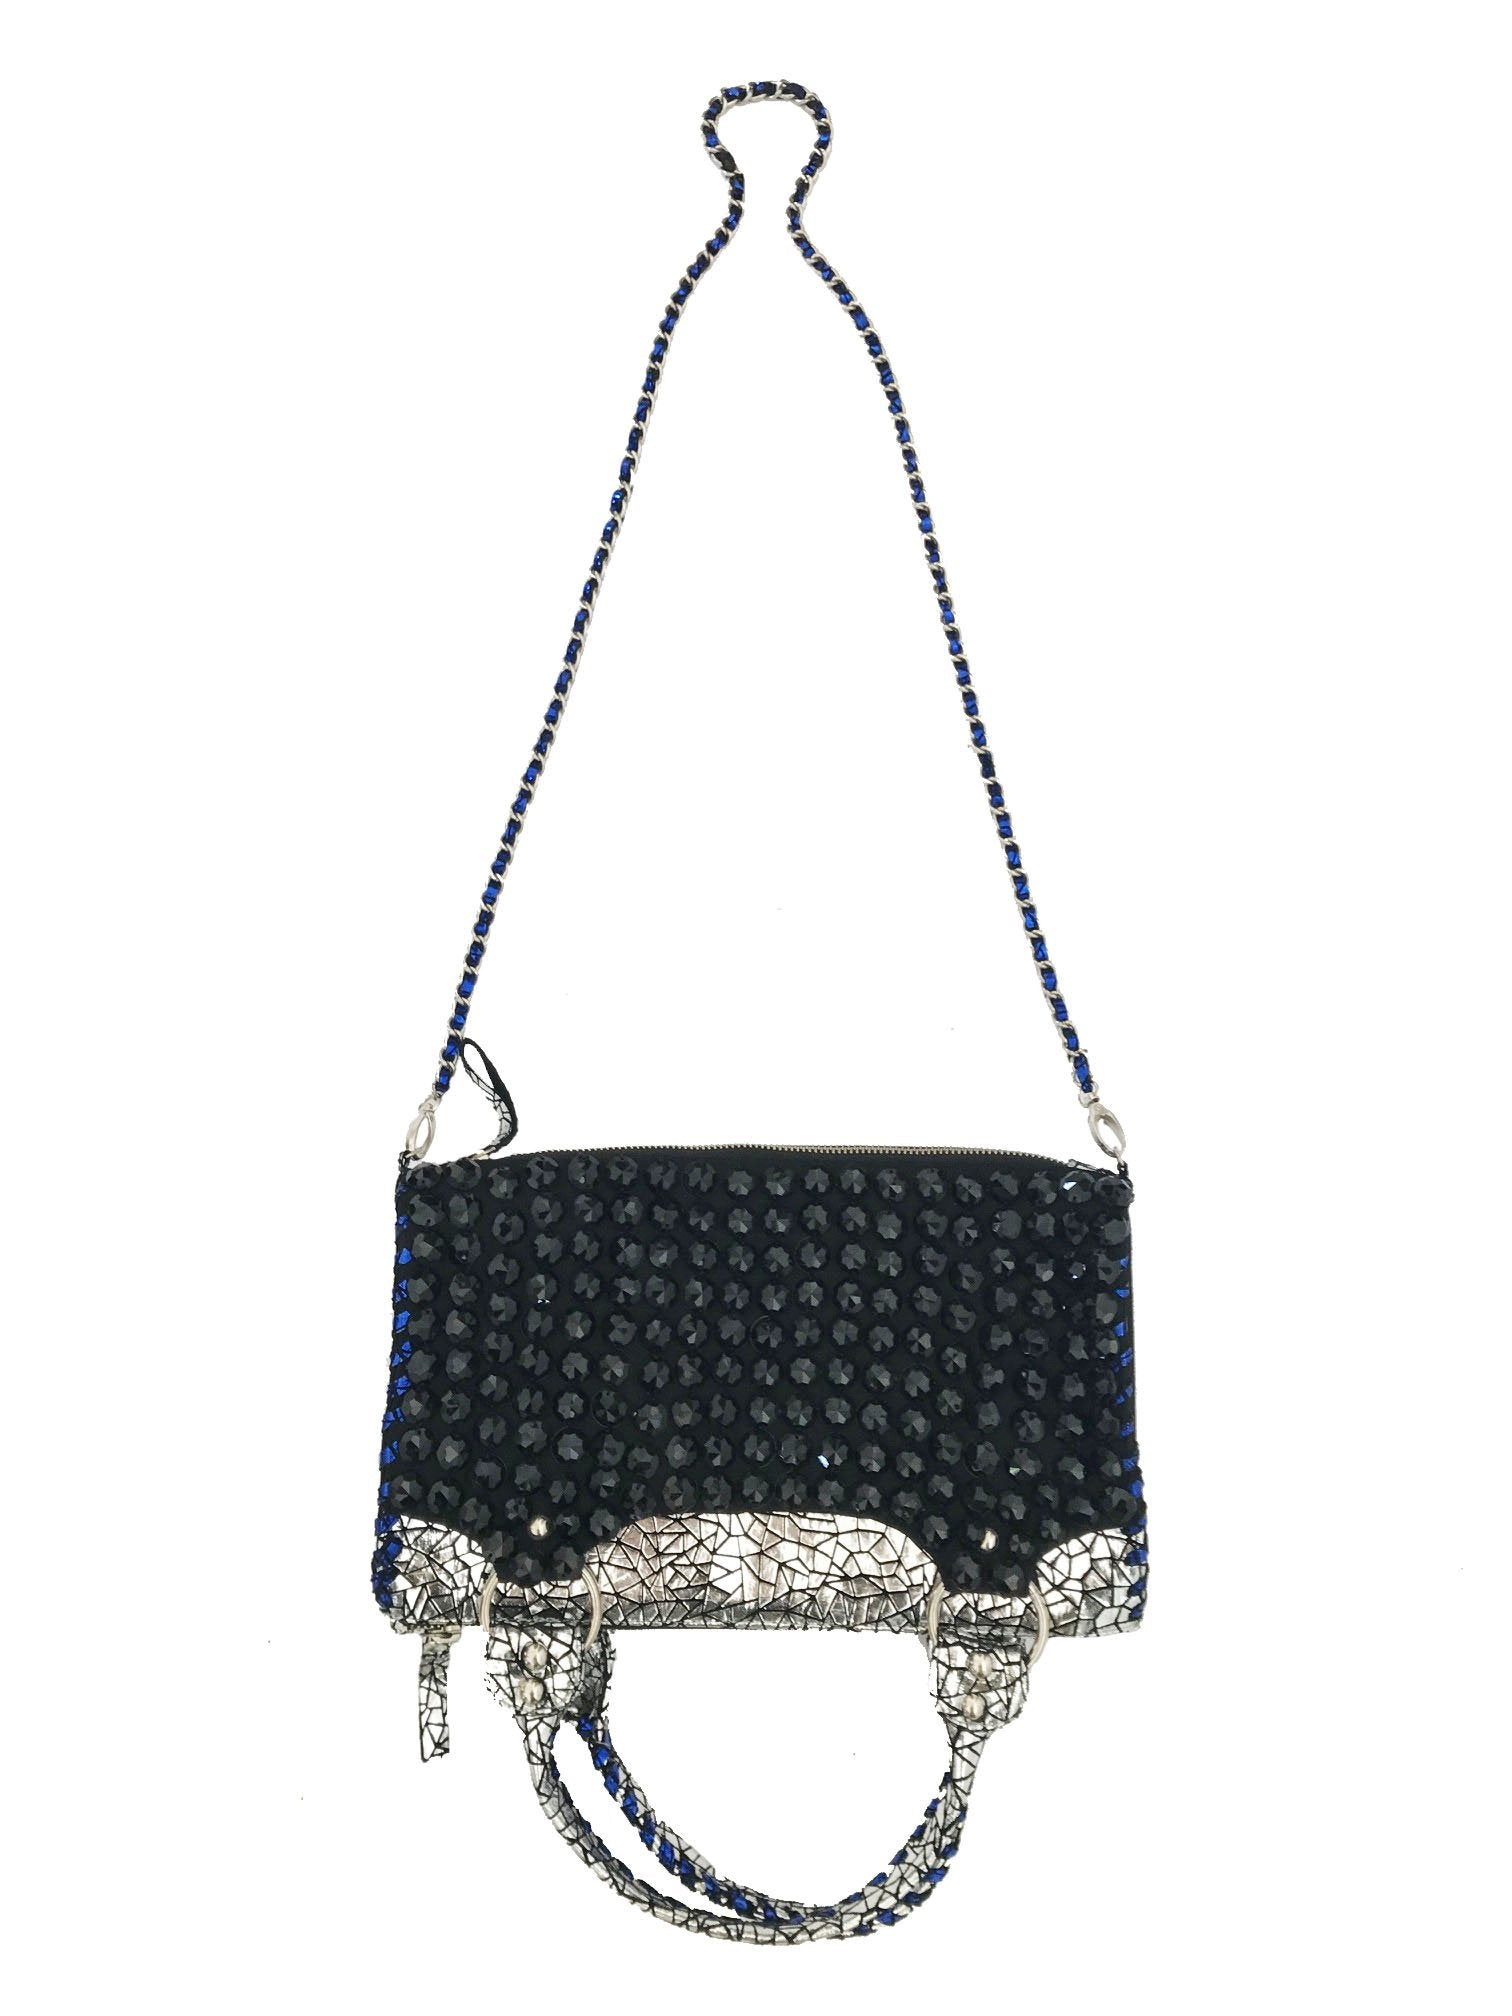 ONE-OFF! RARE! UPSIDE DOWN Satchel Bag